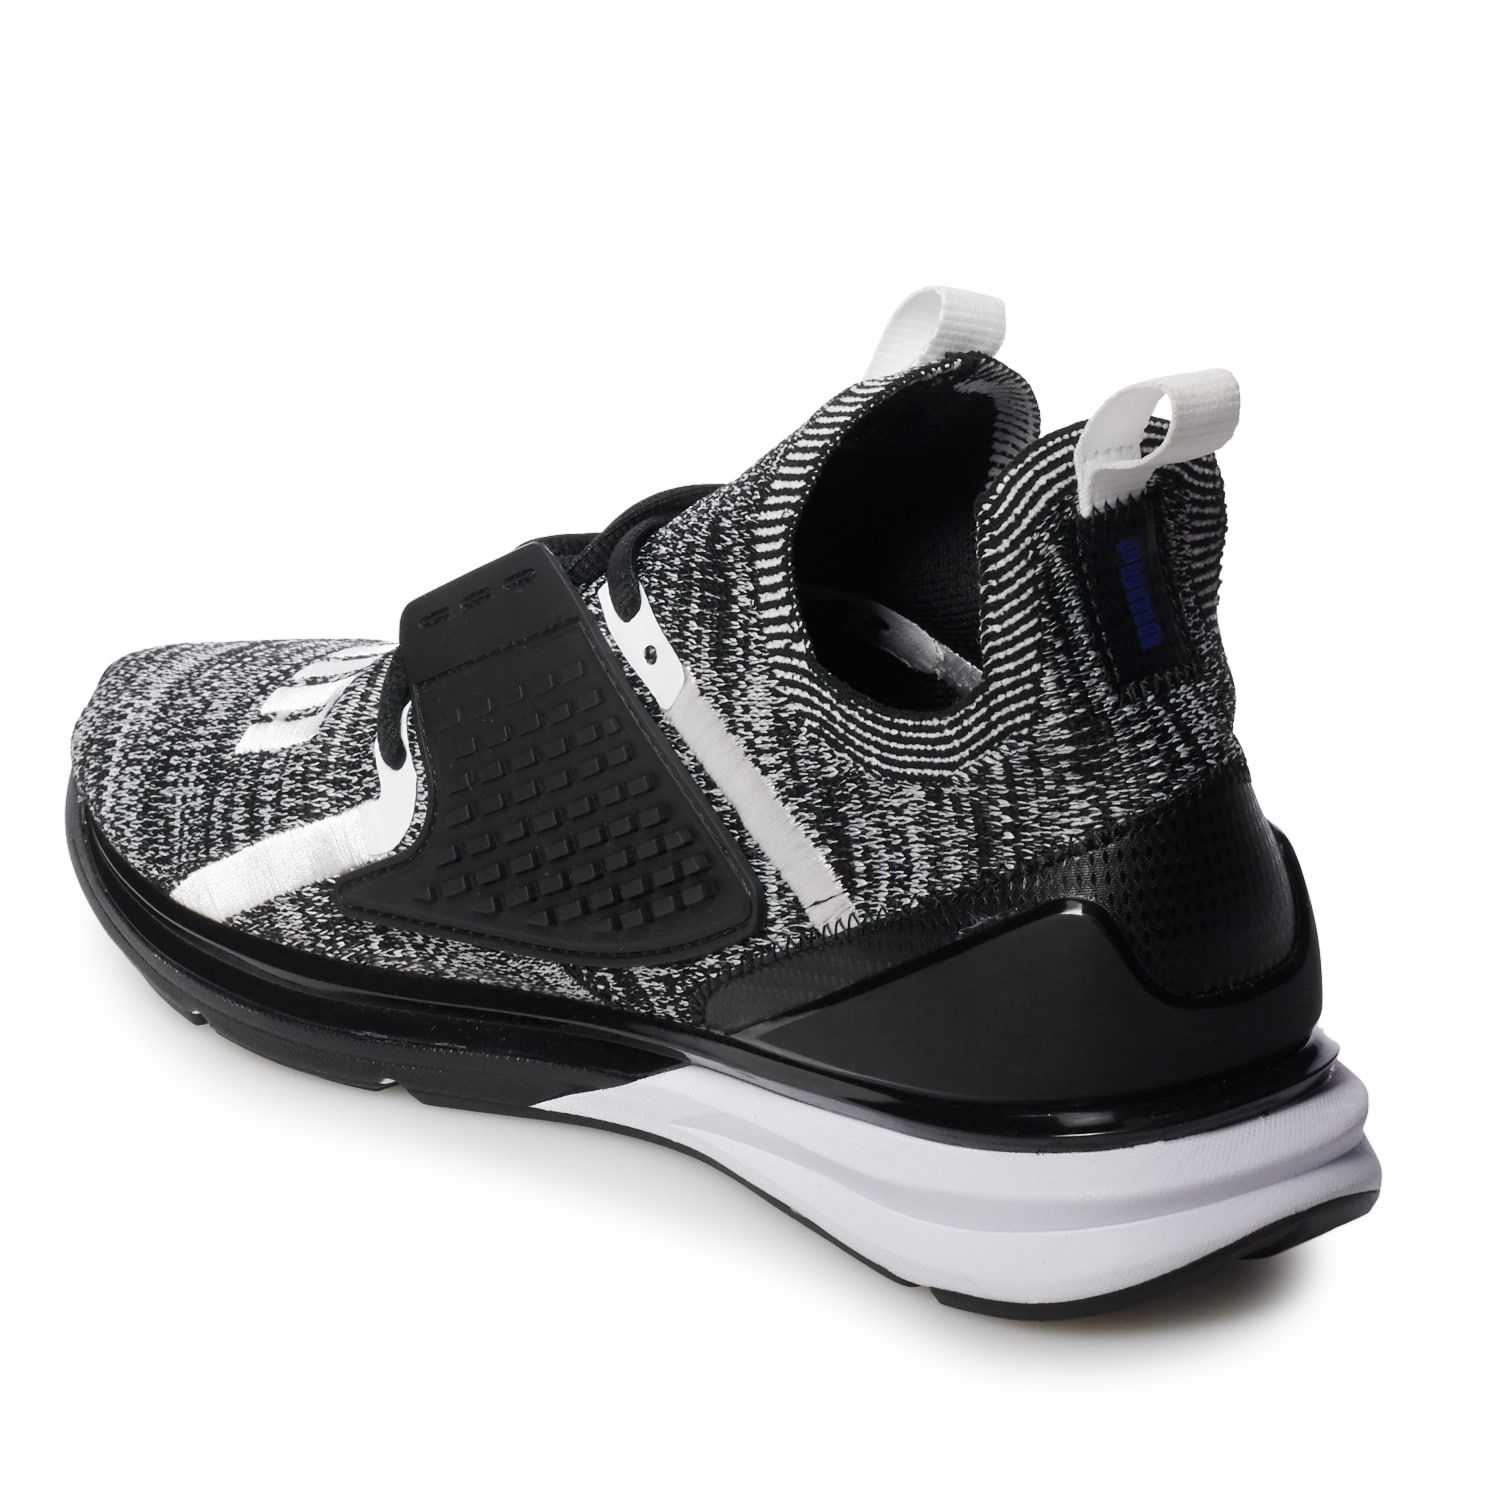 new styles 9f187 578be PUMA Ignite Limitless 2 evoKNIT Men's Running Shoes ...